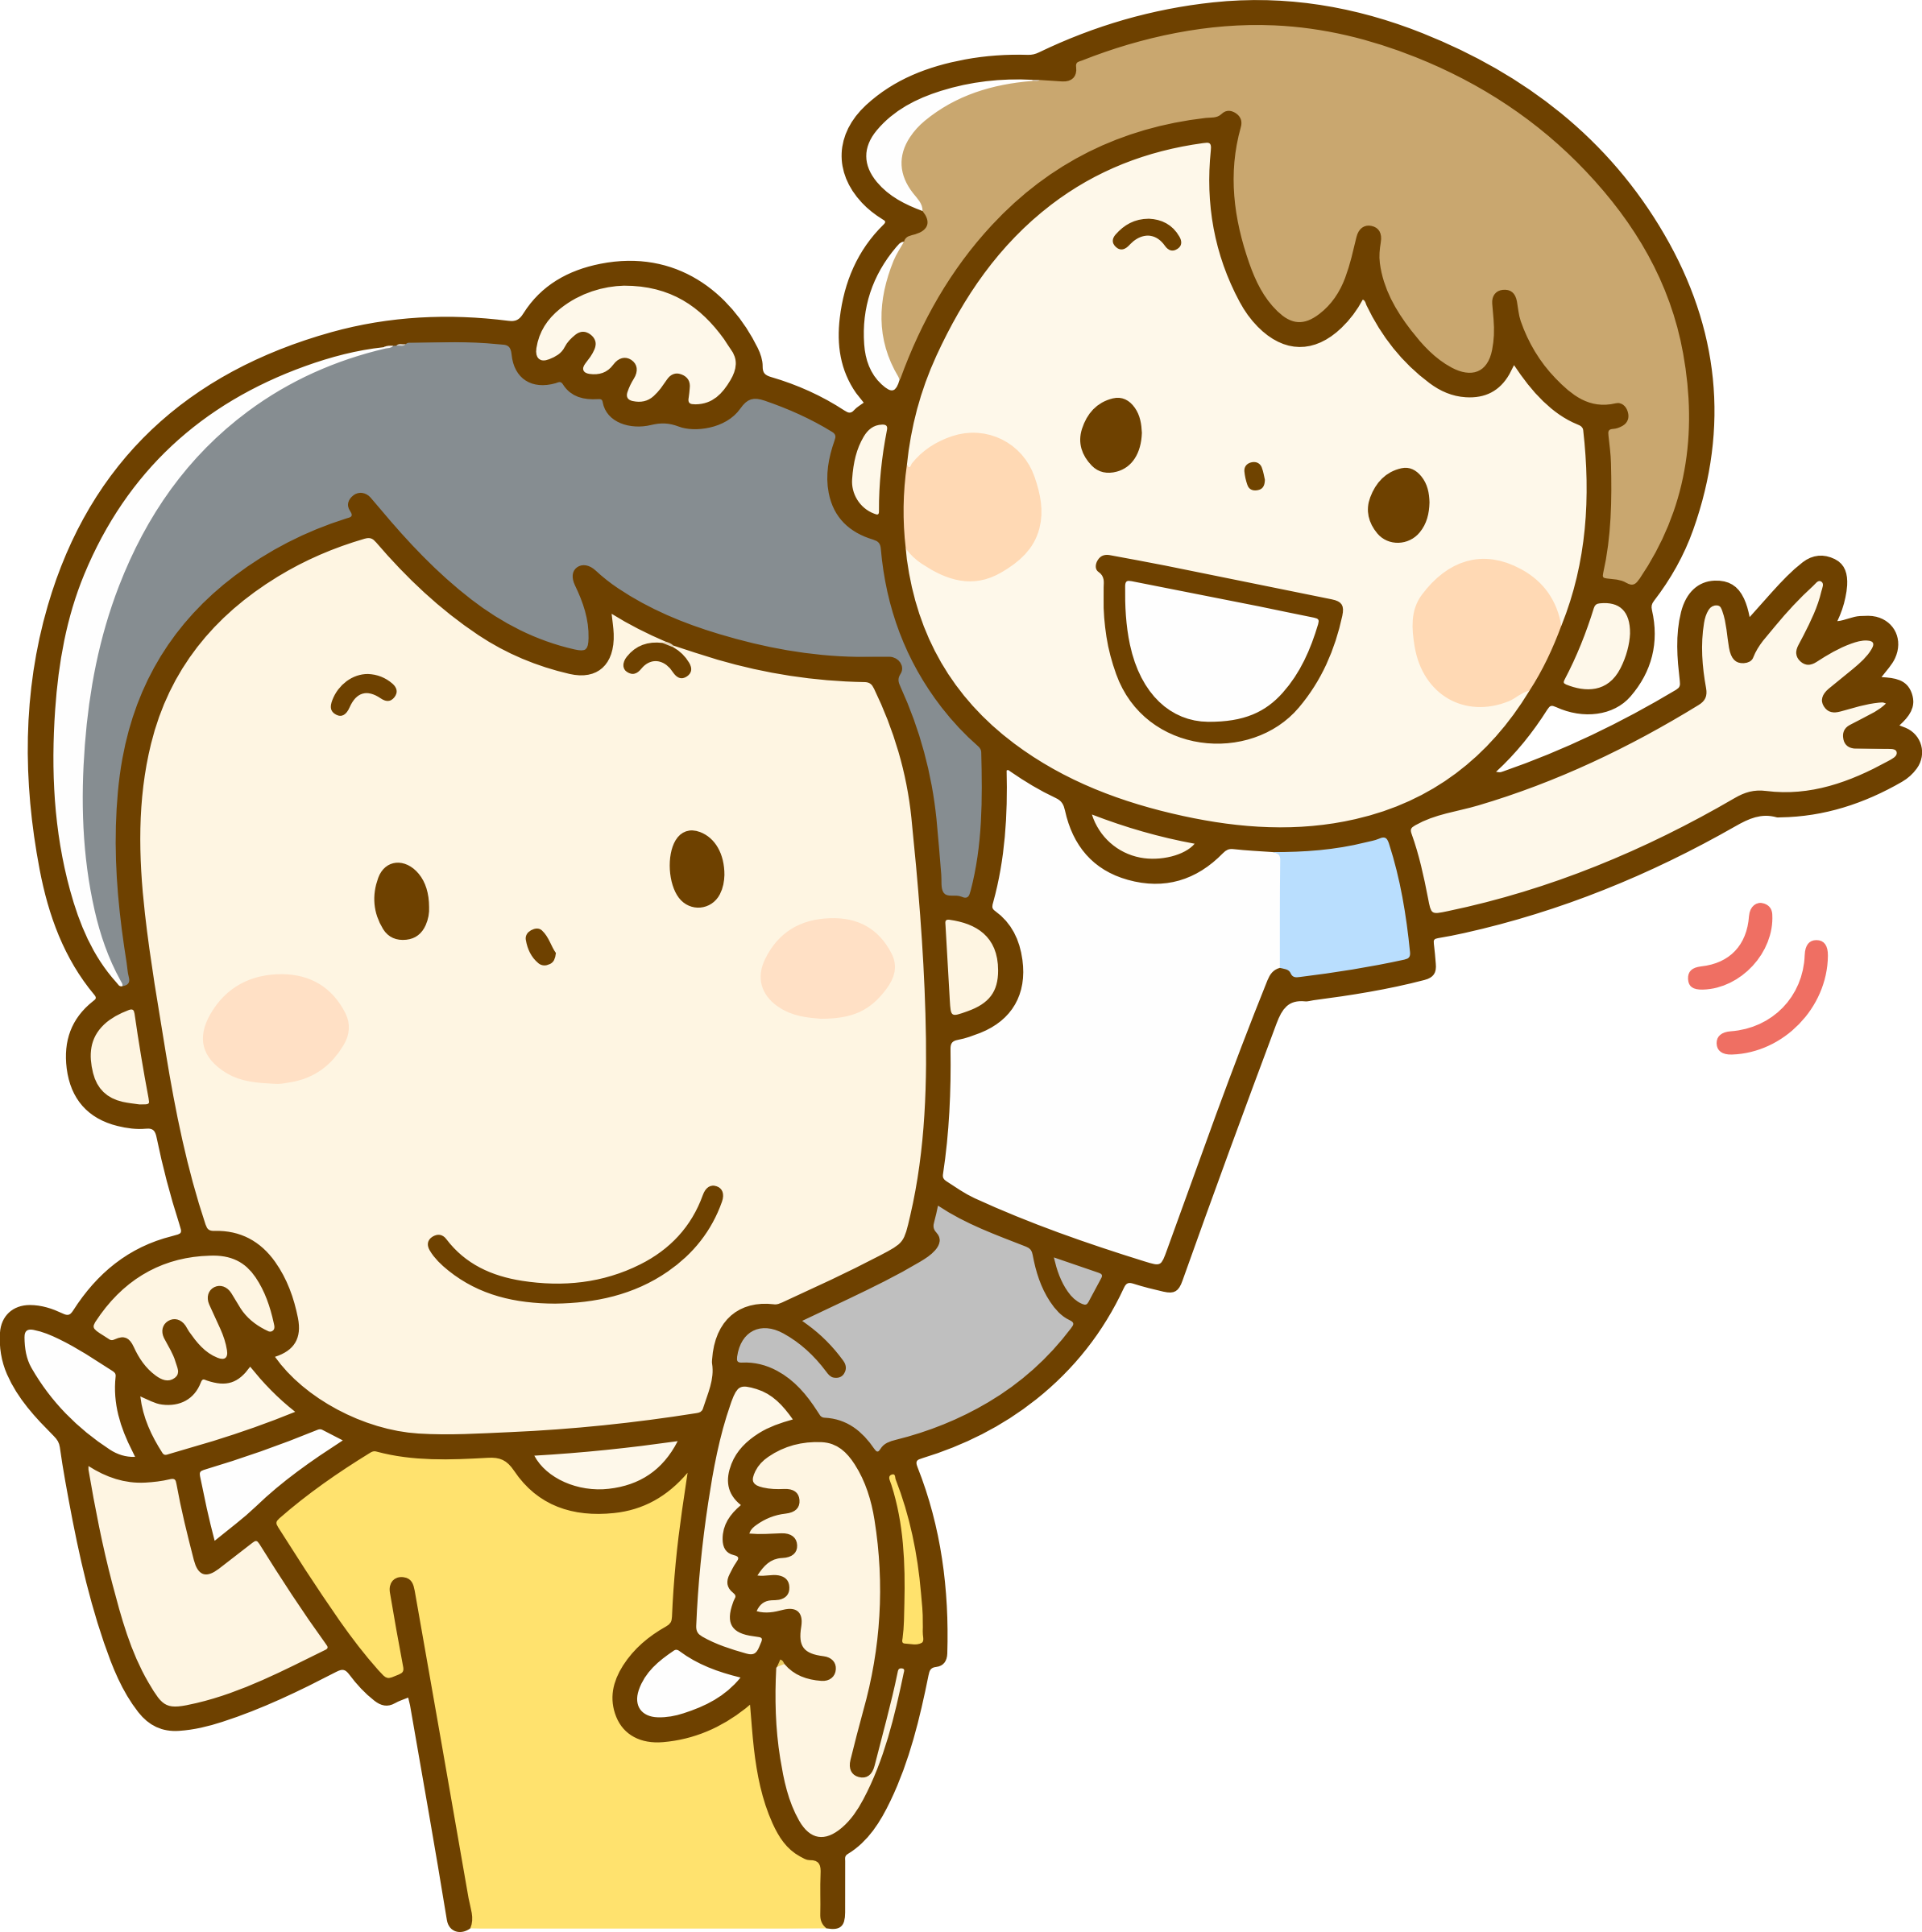 Dad clipart number 1, Dad number 1 Transparent FREE for.